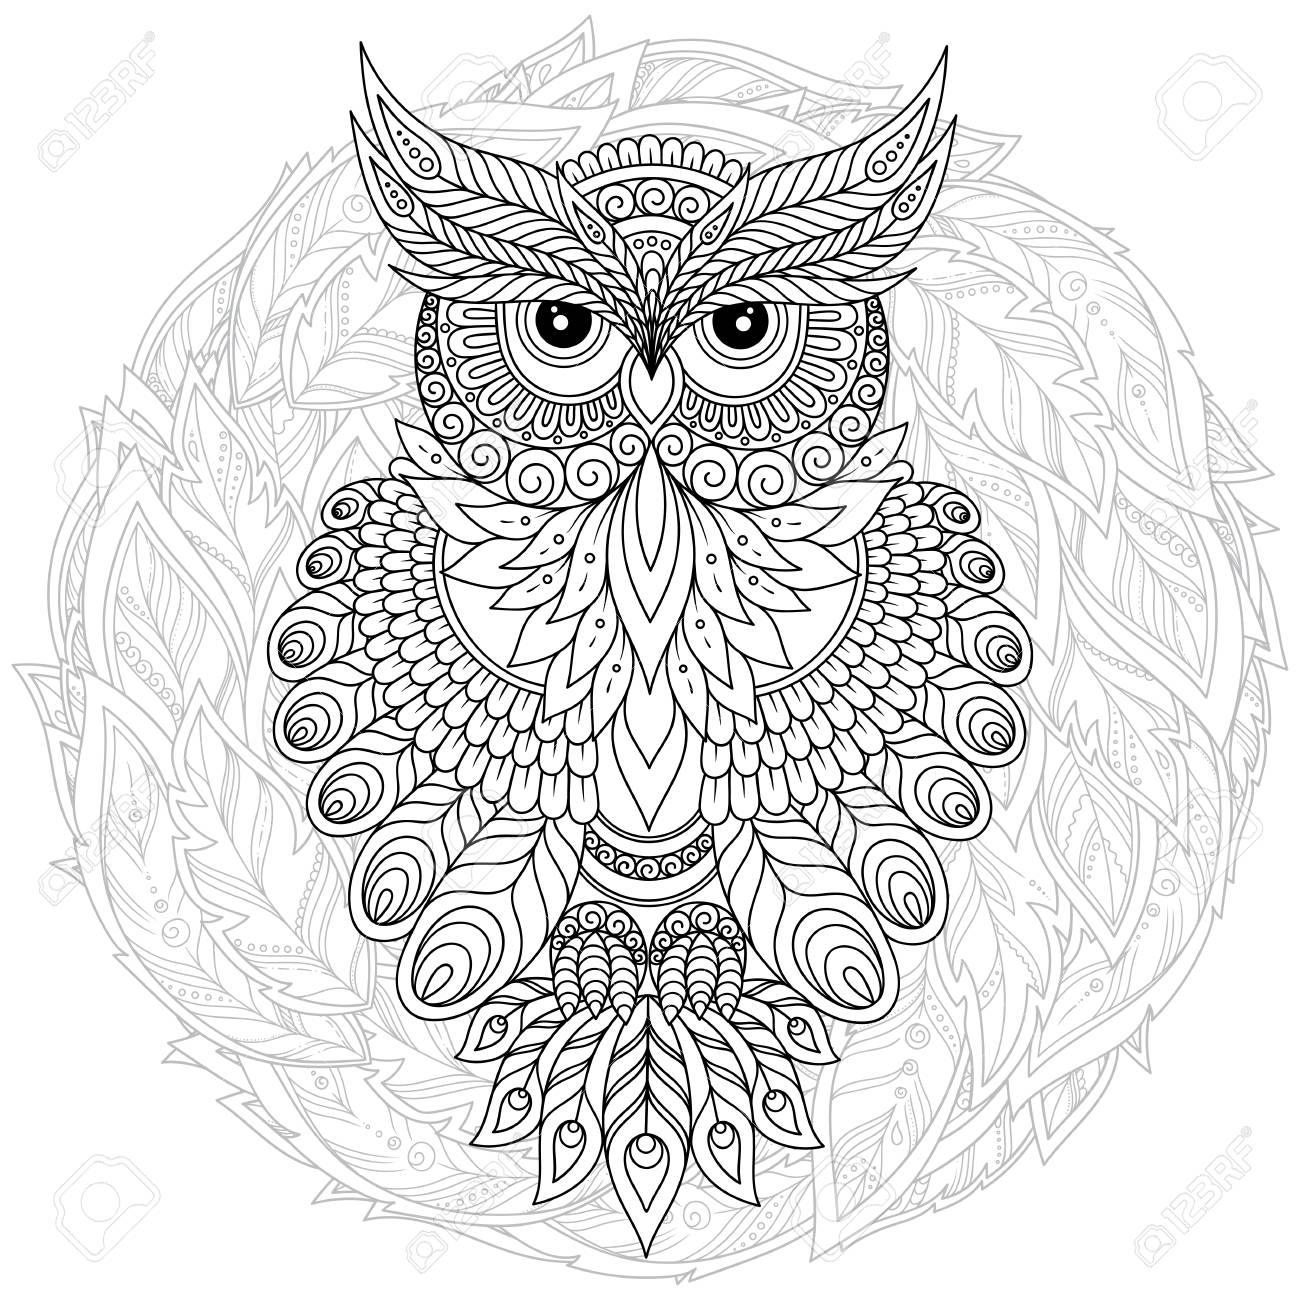 - Decorative Cartoon Owl In Hand Draw Style. Page For Adult Coloring